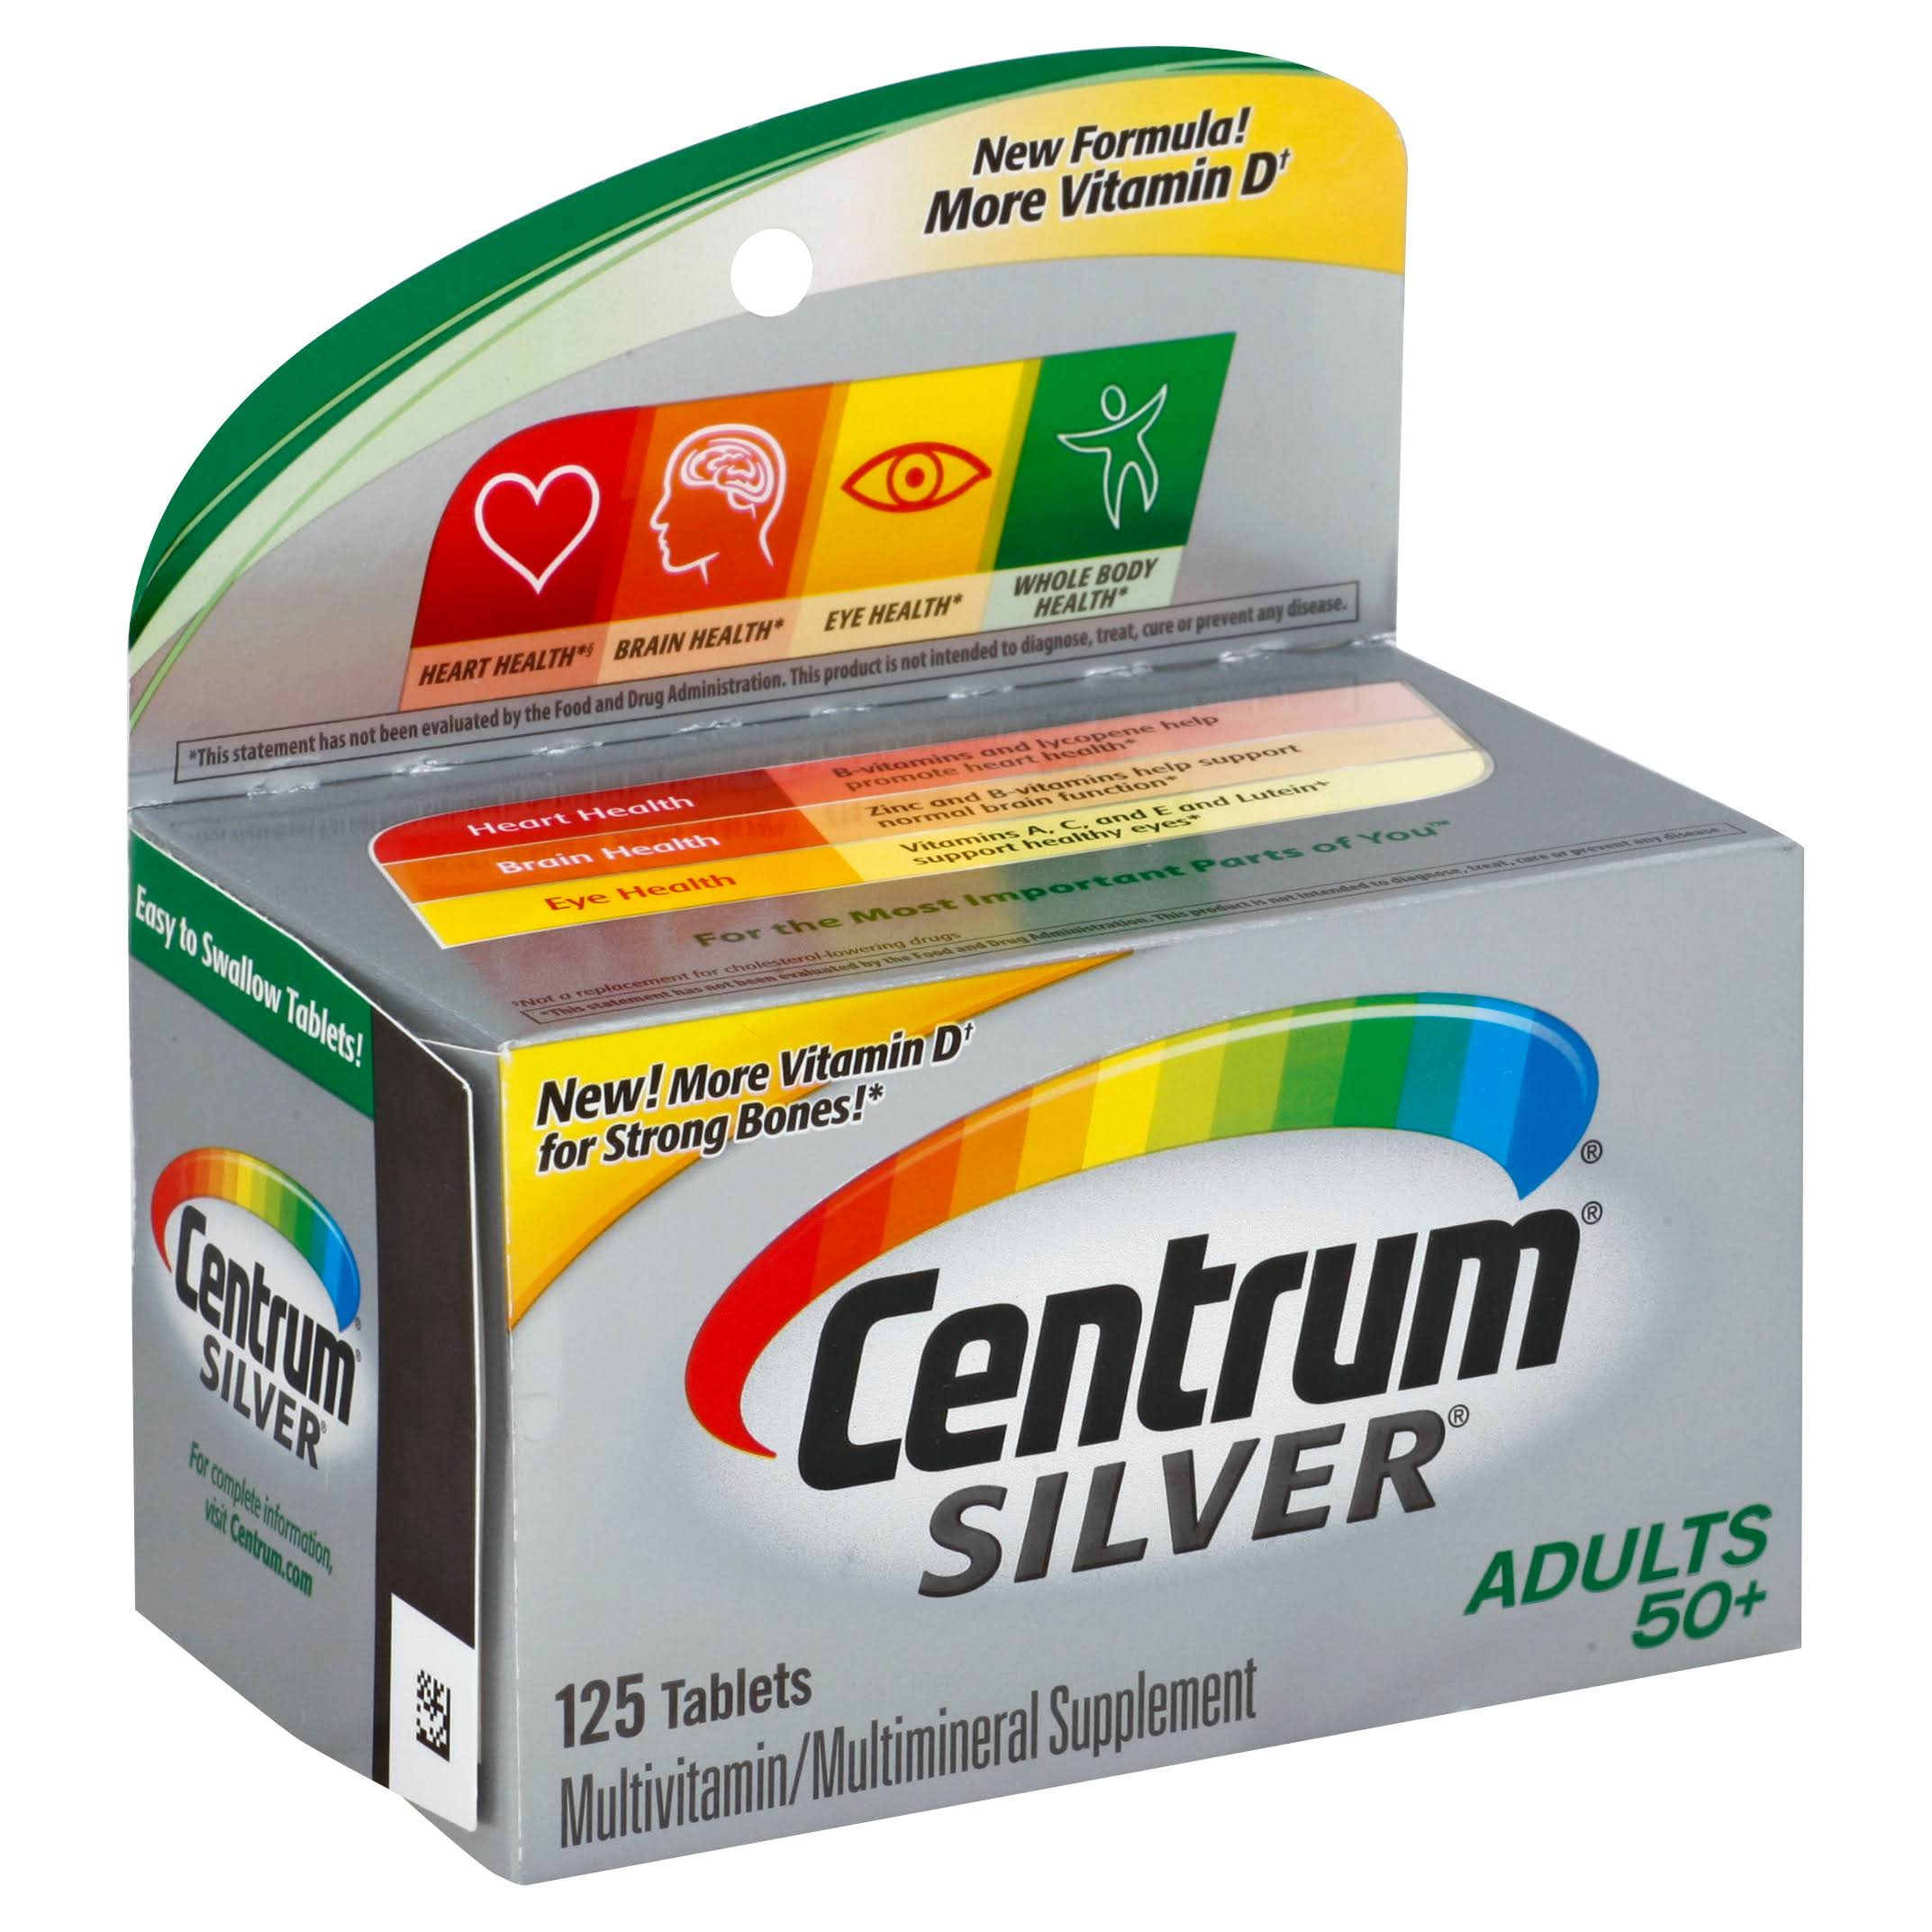 Centrum Silver Adults 50 Plus Multivitamin and Multimineral Supplement - 125 Count